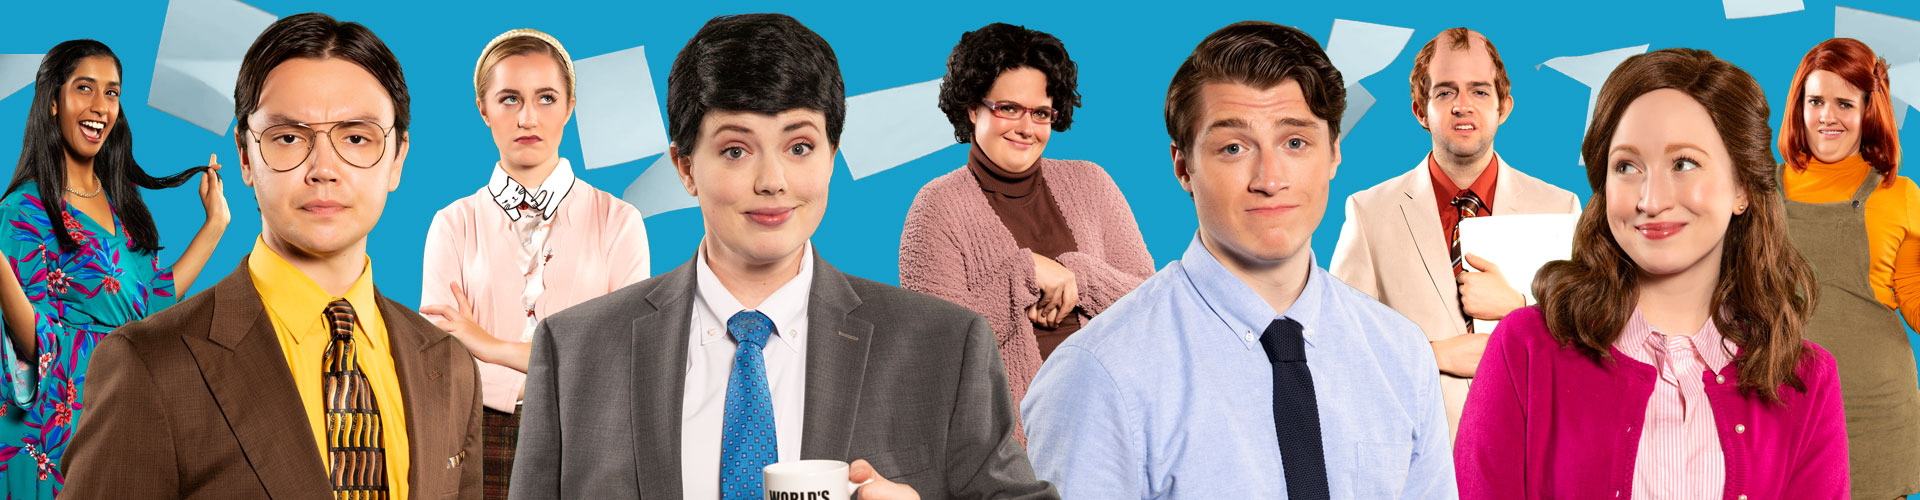 The Office! A Musical Parody - Postponed: Date TBD